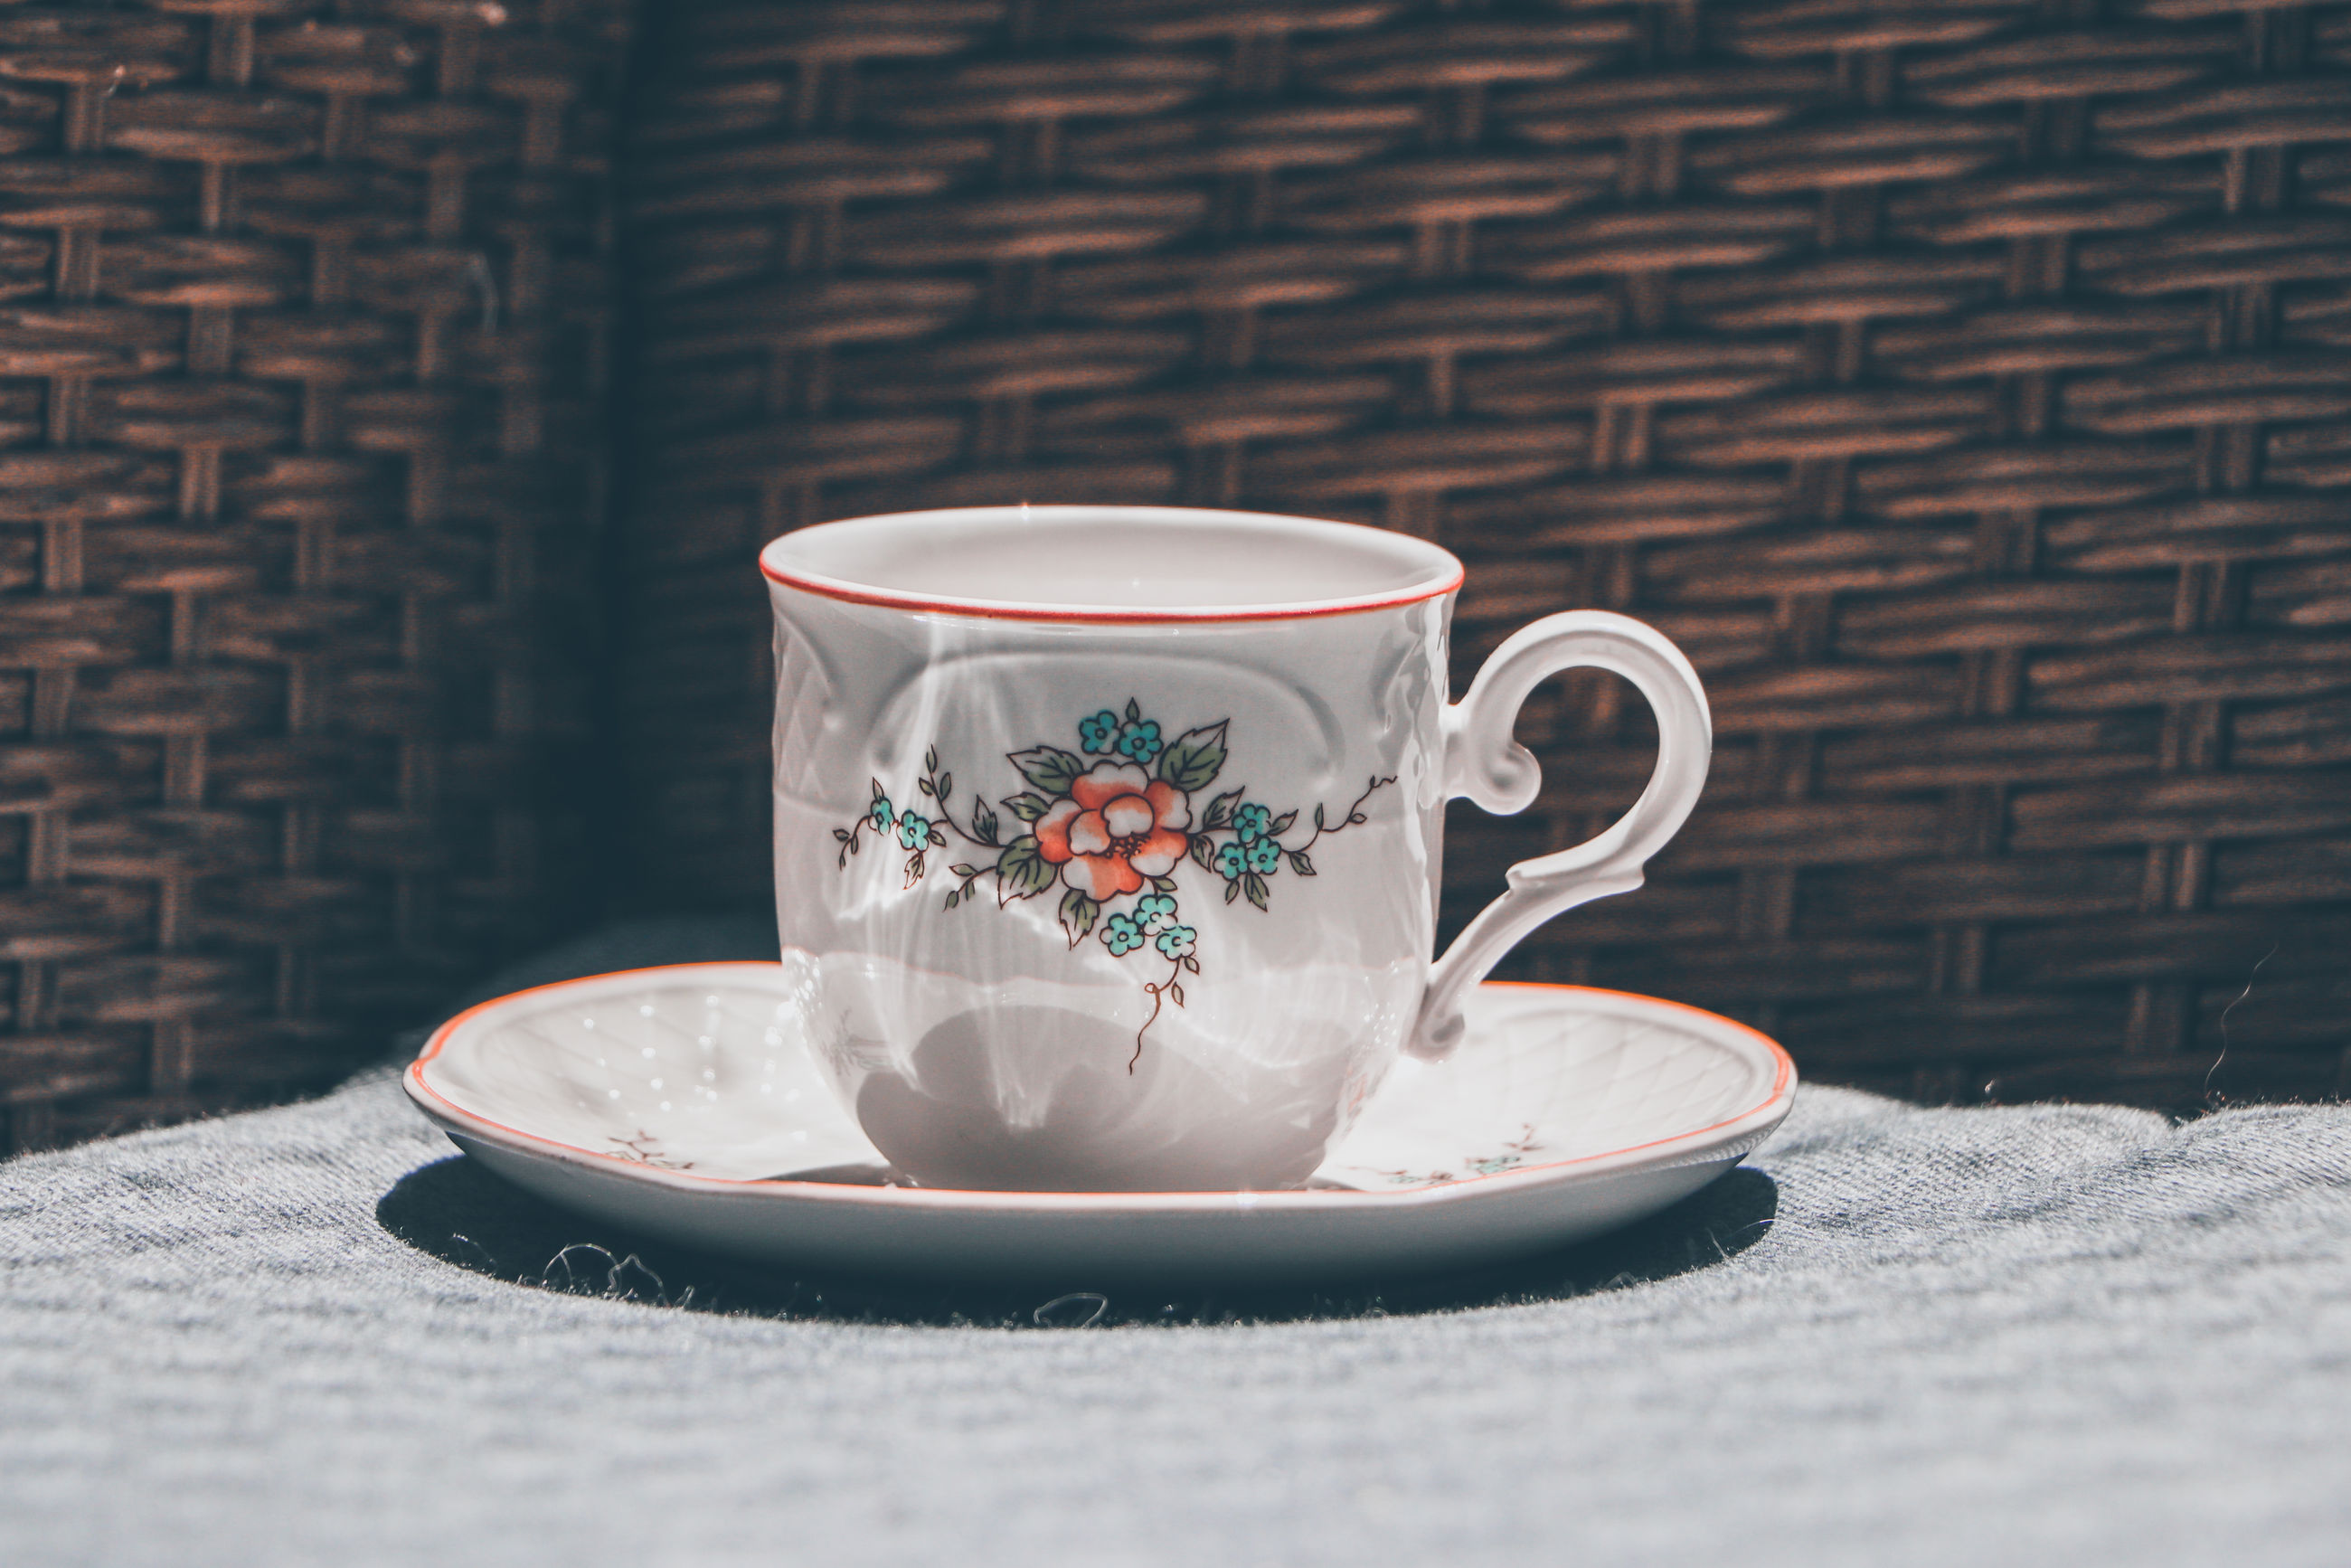 cup, mug, saucer, brick wall, drink, food and drink, coffee cup, brick, hot drink, wall, crockery, refreshment, tea cup, tea, coffee, serveware, table, no people, tableware, still life, ceramic, freshness, food, porcelain, pattern, indoors